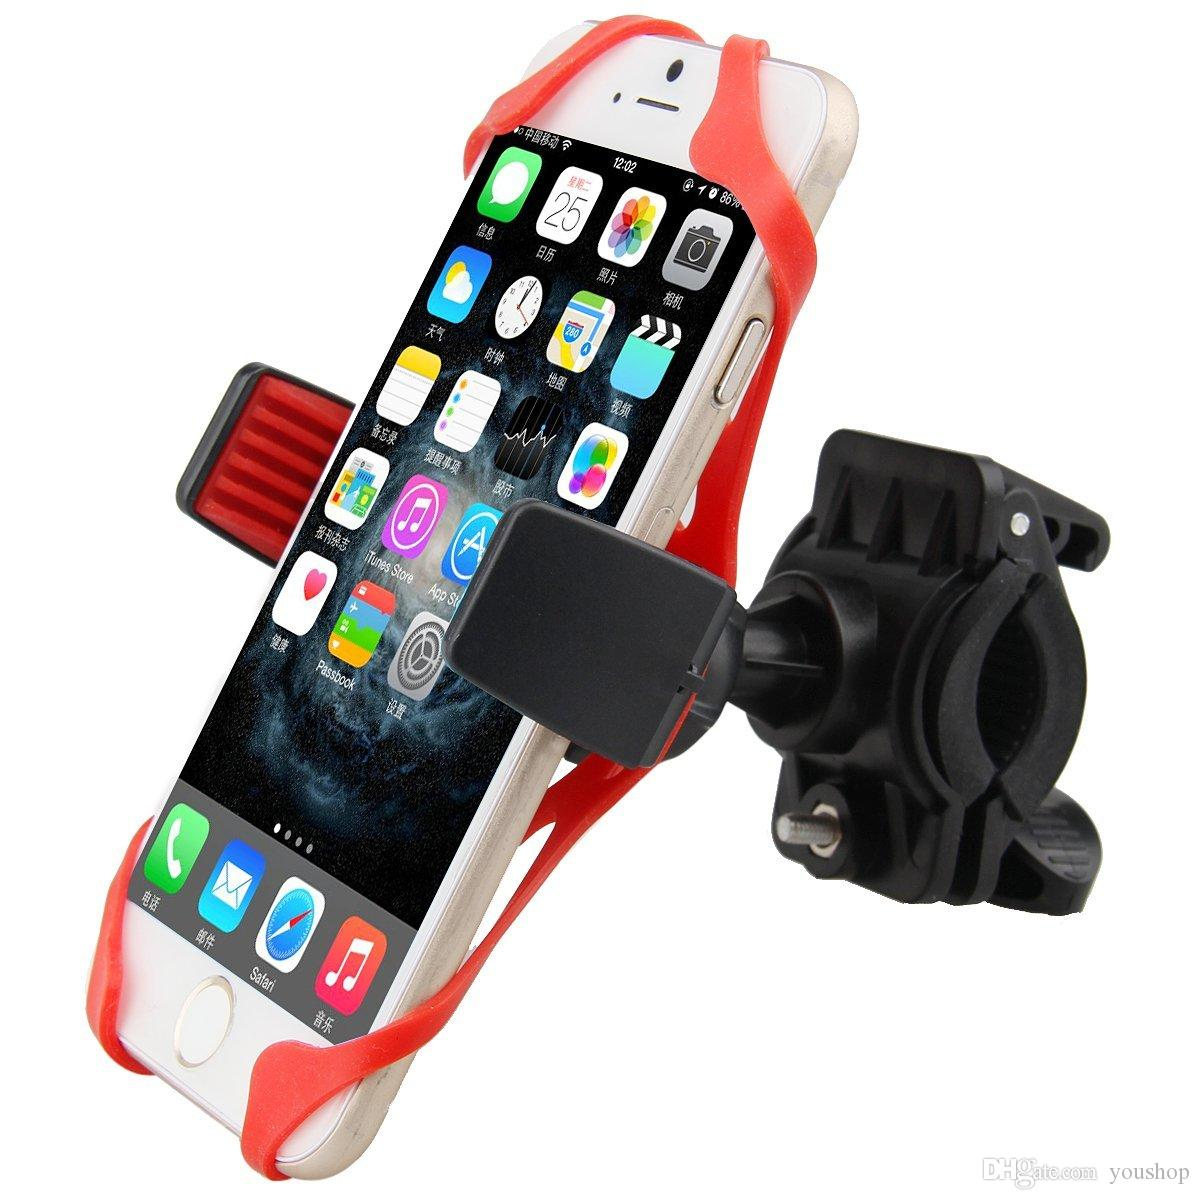 quality design df4f2 36d58 Bike Mount Bicycle Holder Universal Smartphone Bike Mount Holder with 360  Degree Rotate for iphone 6s / 6 / 5S /5C for Samsung